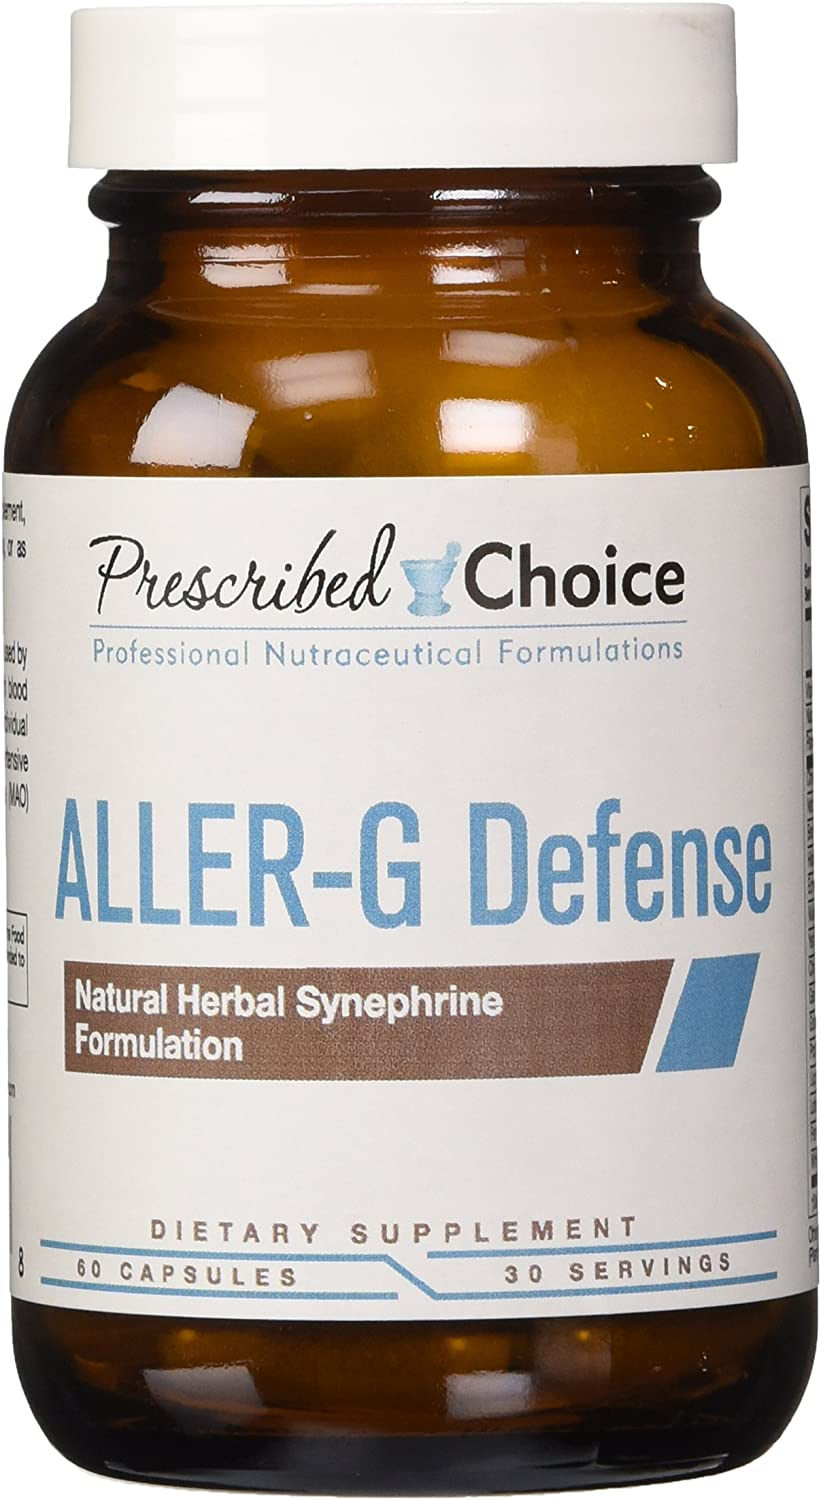 Prescribed Choice Aller-G Defense Capsules, 60 Count